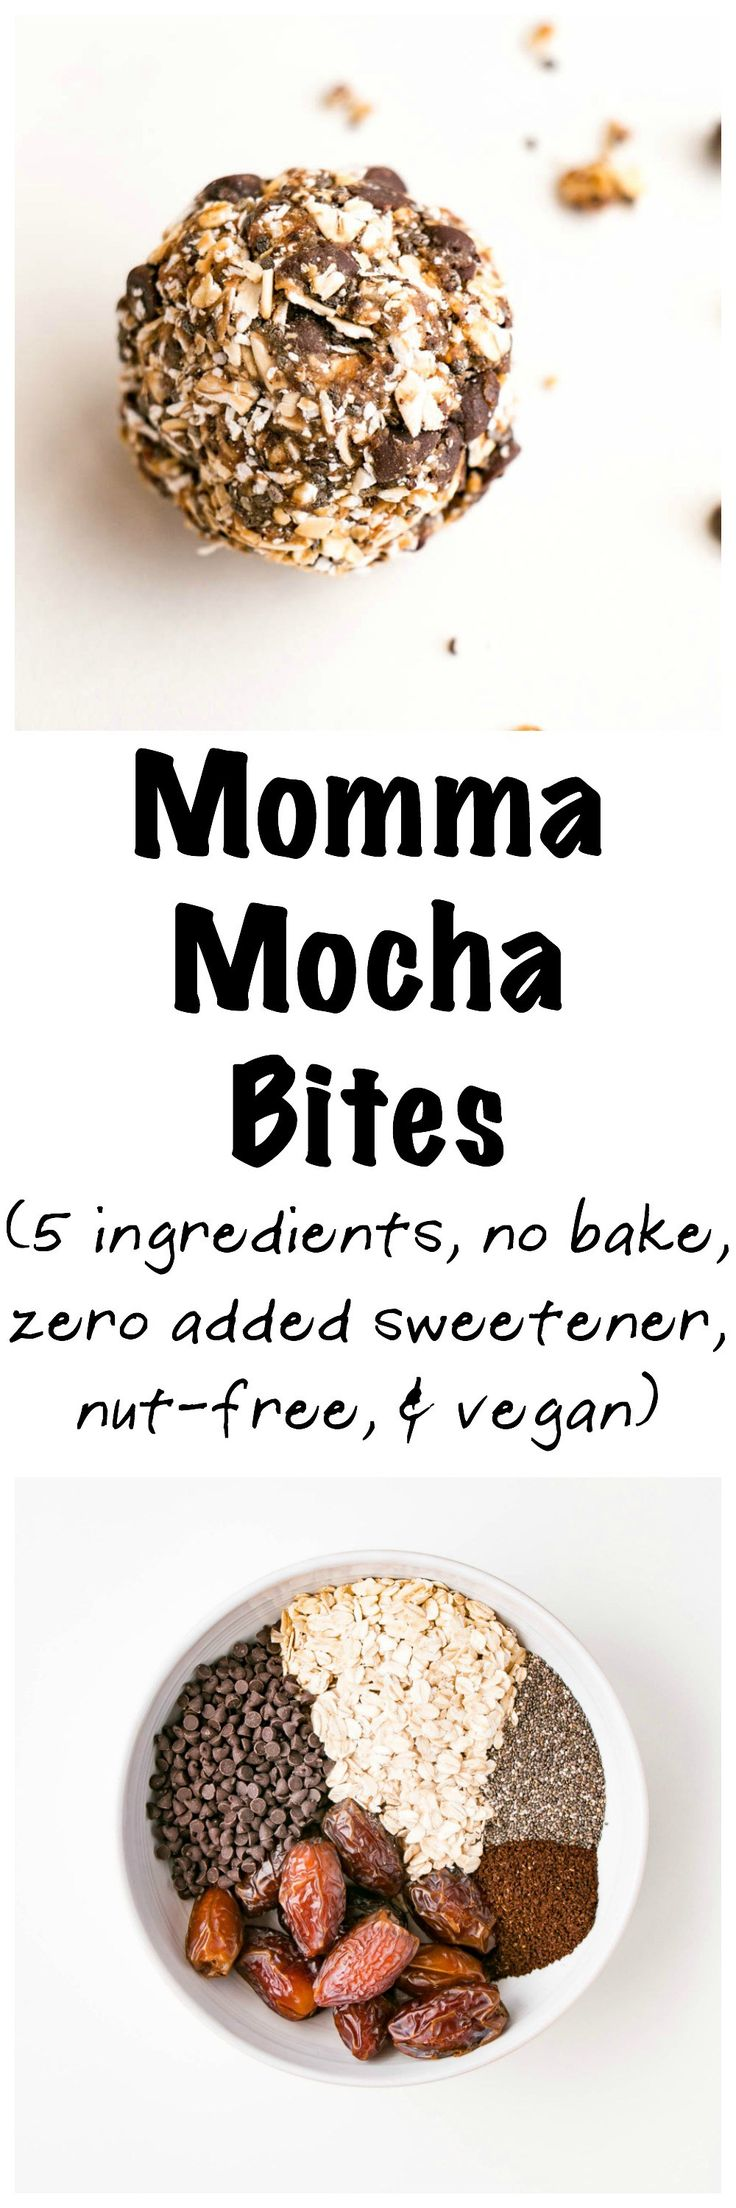 Mocha Momma Bites ~ A hit of caffeine for those sluggish days, a boost of protein and fibre from the oats, dates to sweeten and replenish magnesium post workout, chia seeds for more feel-good nutrition, and chocolate to make it feel like a treat! | My Kitchen Love